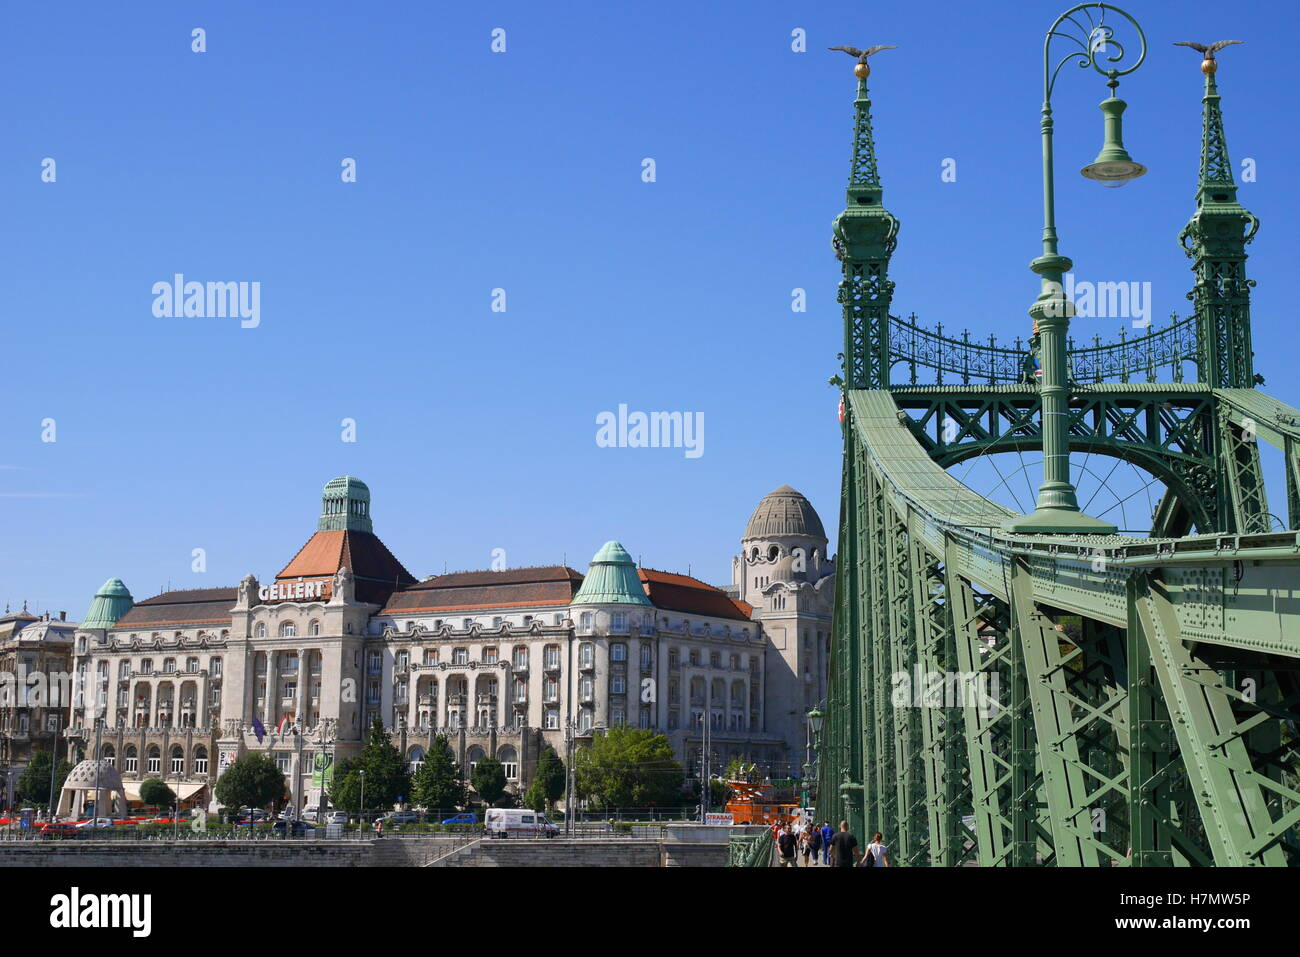 Liberty Bridge (Szabadsag hid), crossing the River Danube, with the Hotel Gellert in the background, Budapest, Hungary Stock Photo